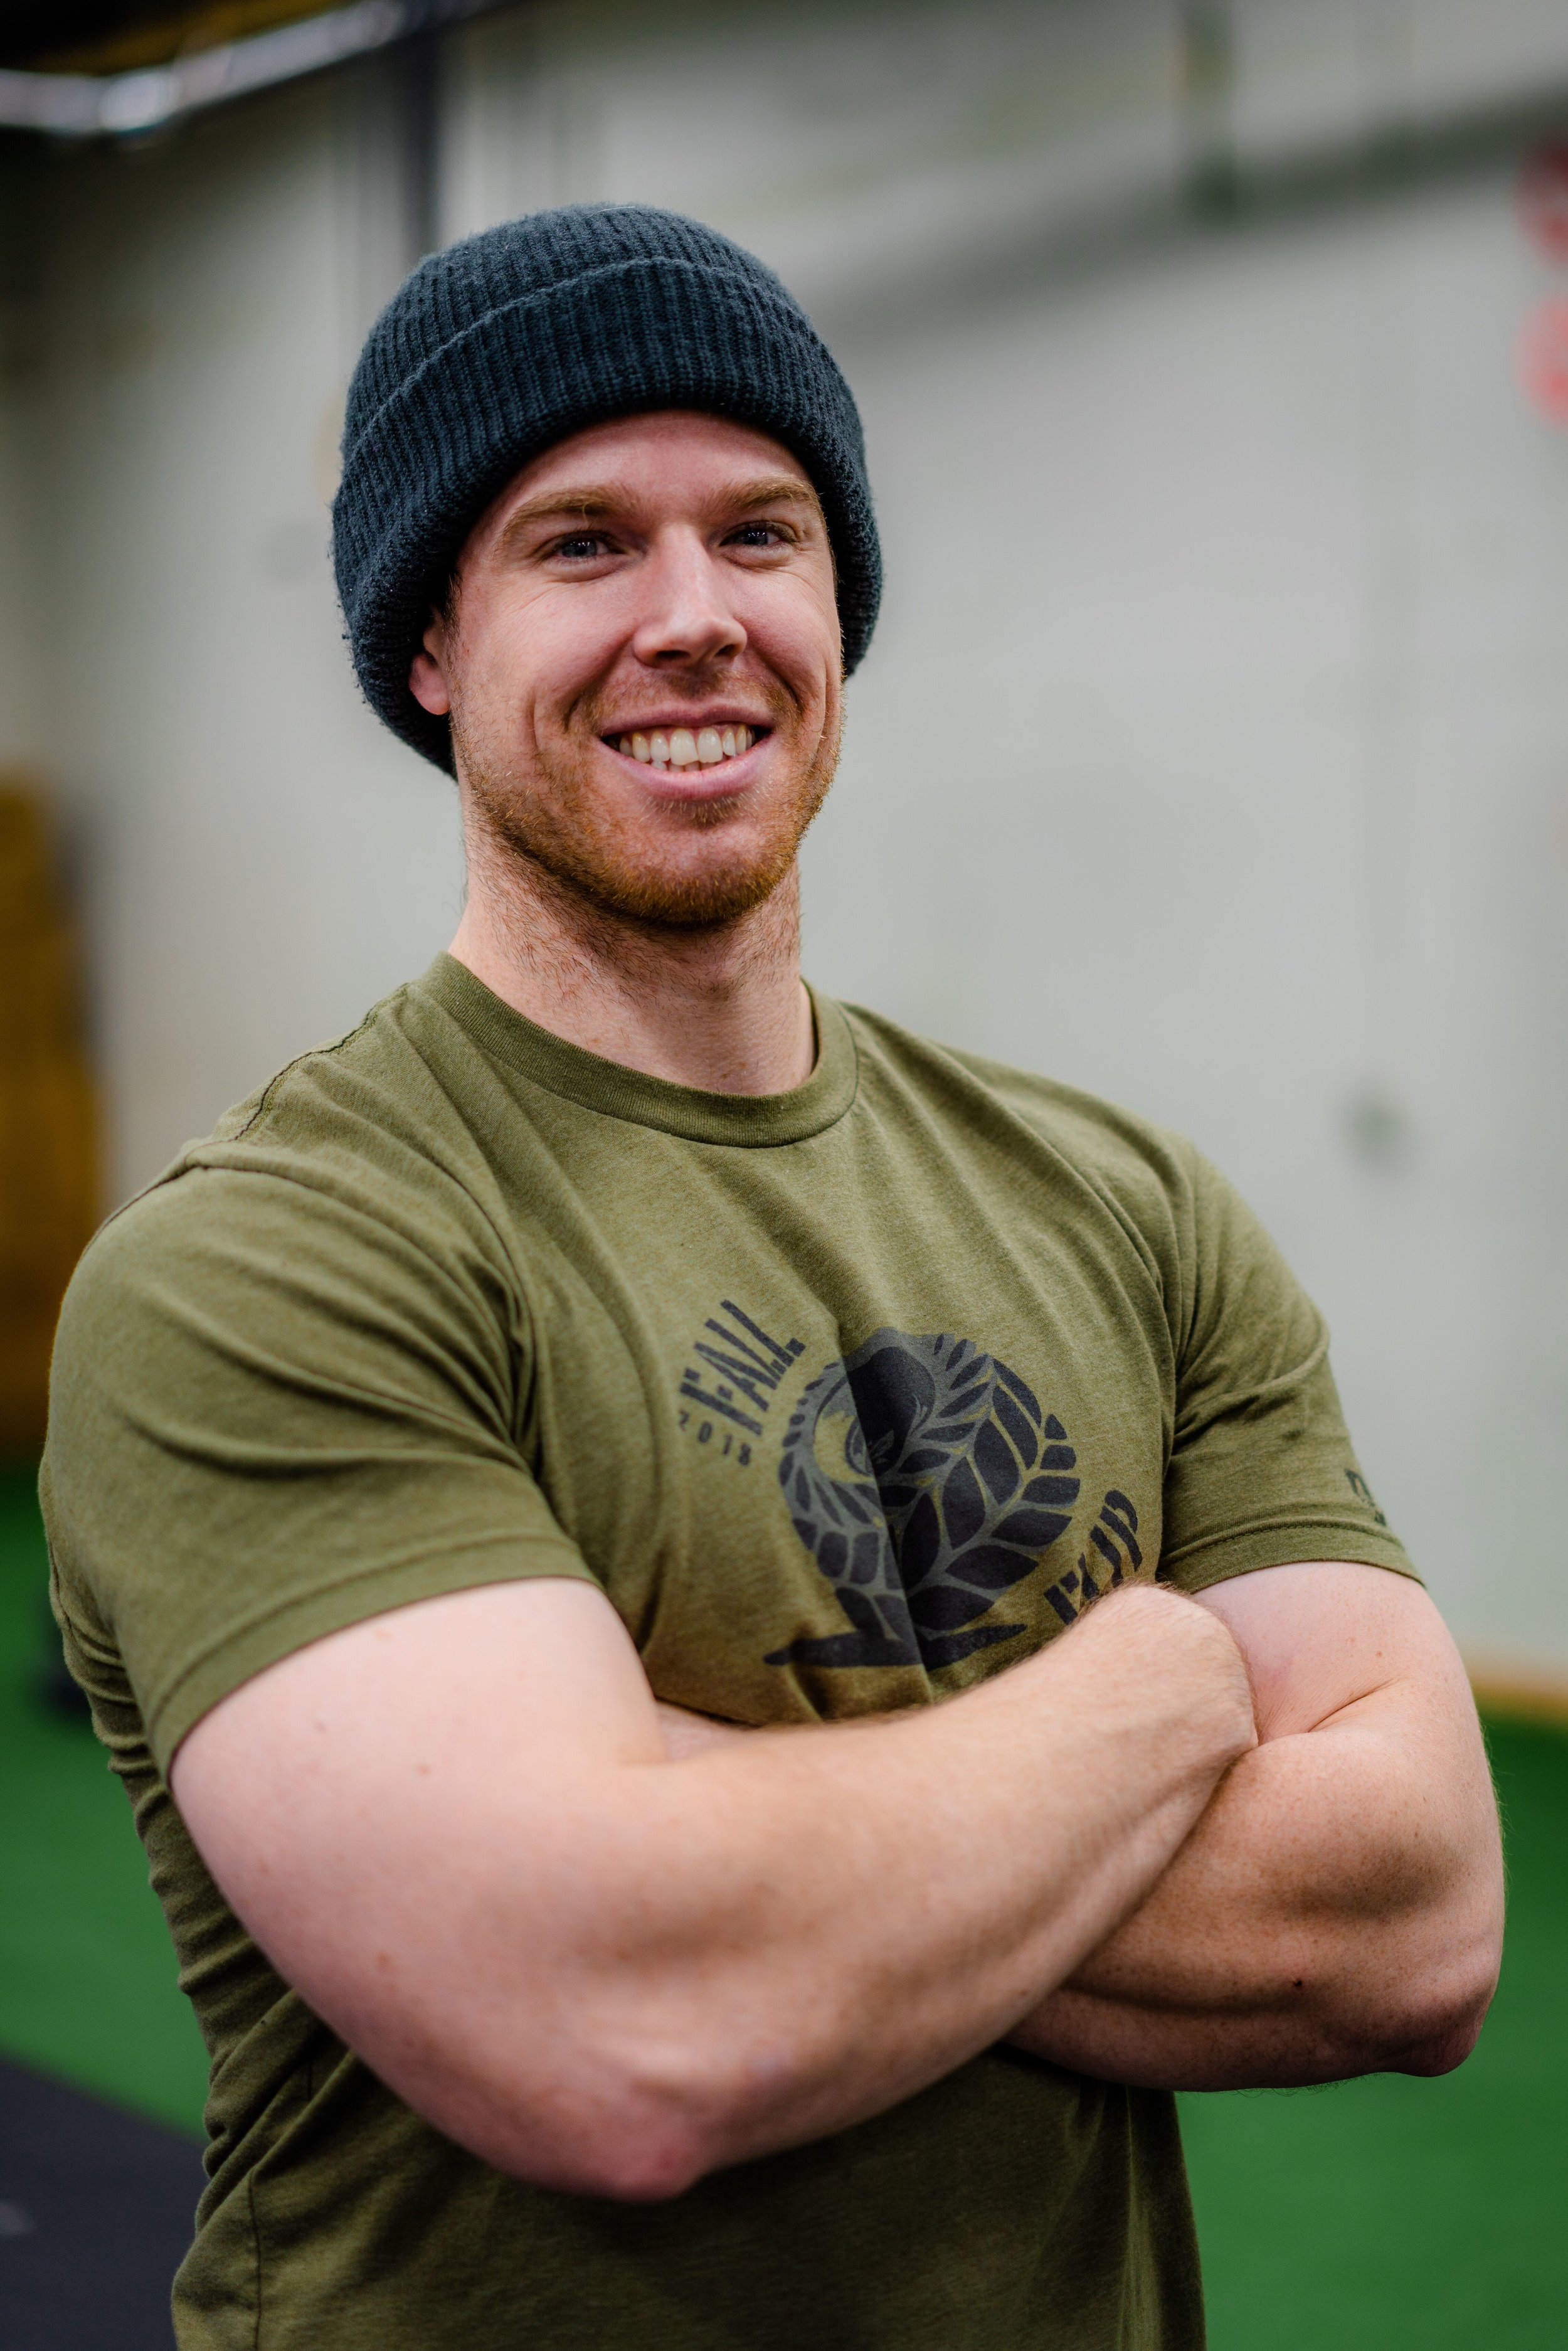 Rick - Head coach, CrossFit ProgrammingSince I started CrossFit in 2009, I have seen an evolution in fitness that makes me really excited to be a coach at CrossFit Watch City. Working with a wide variety of athletes to achieve whatever their